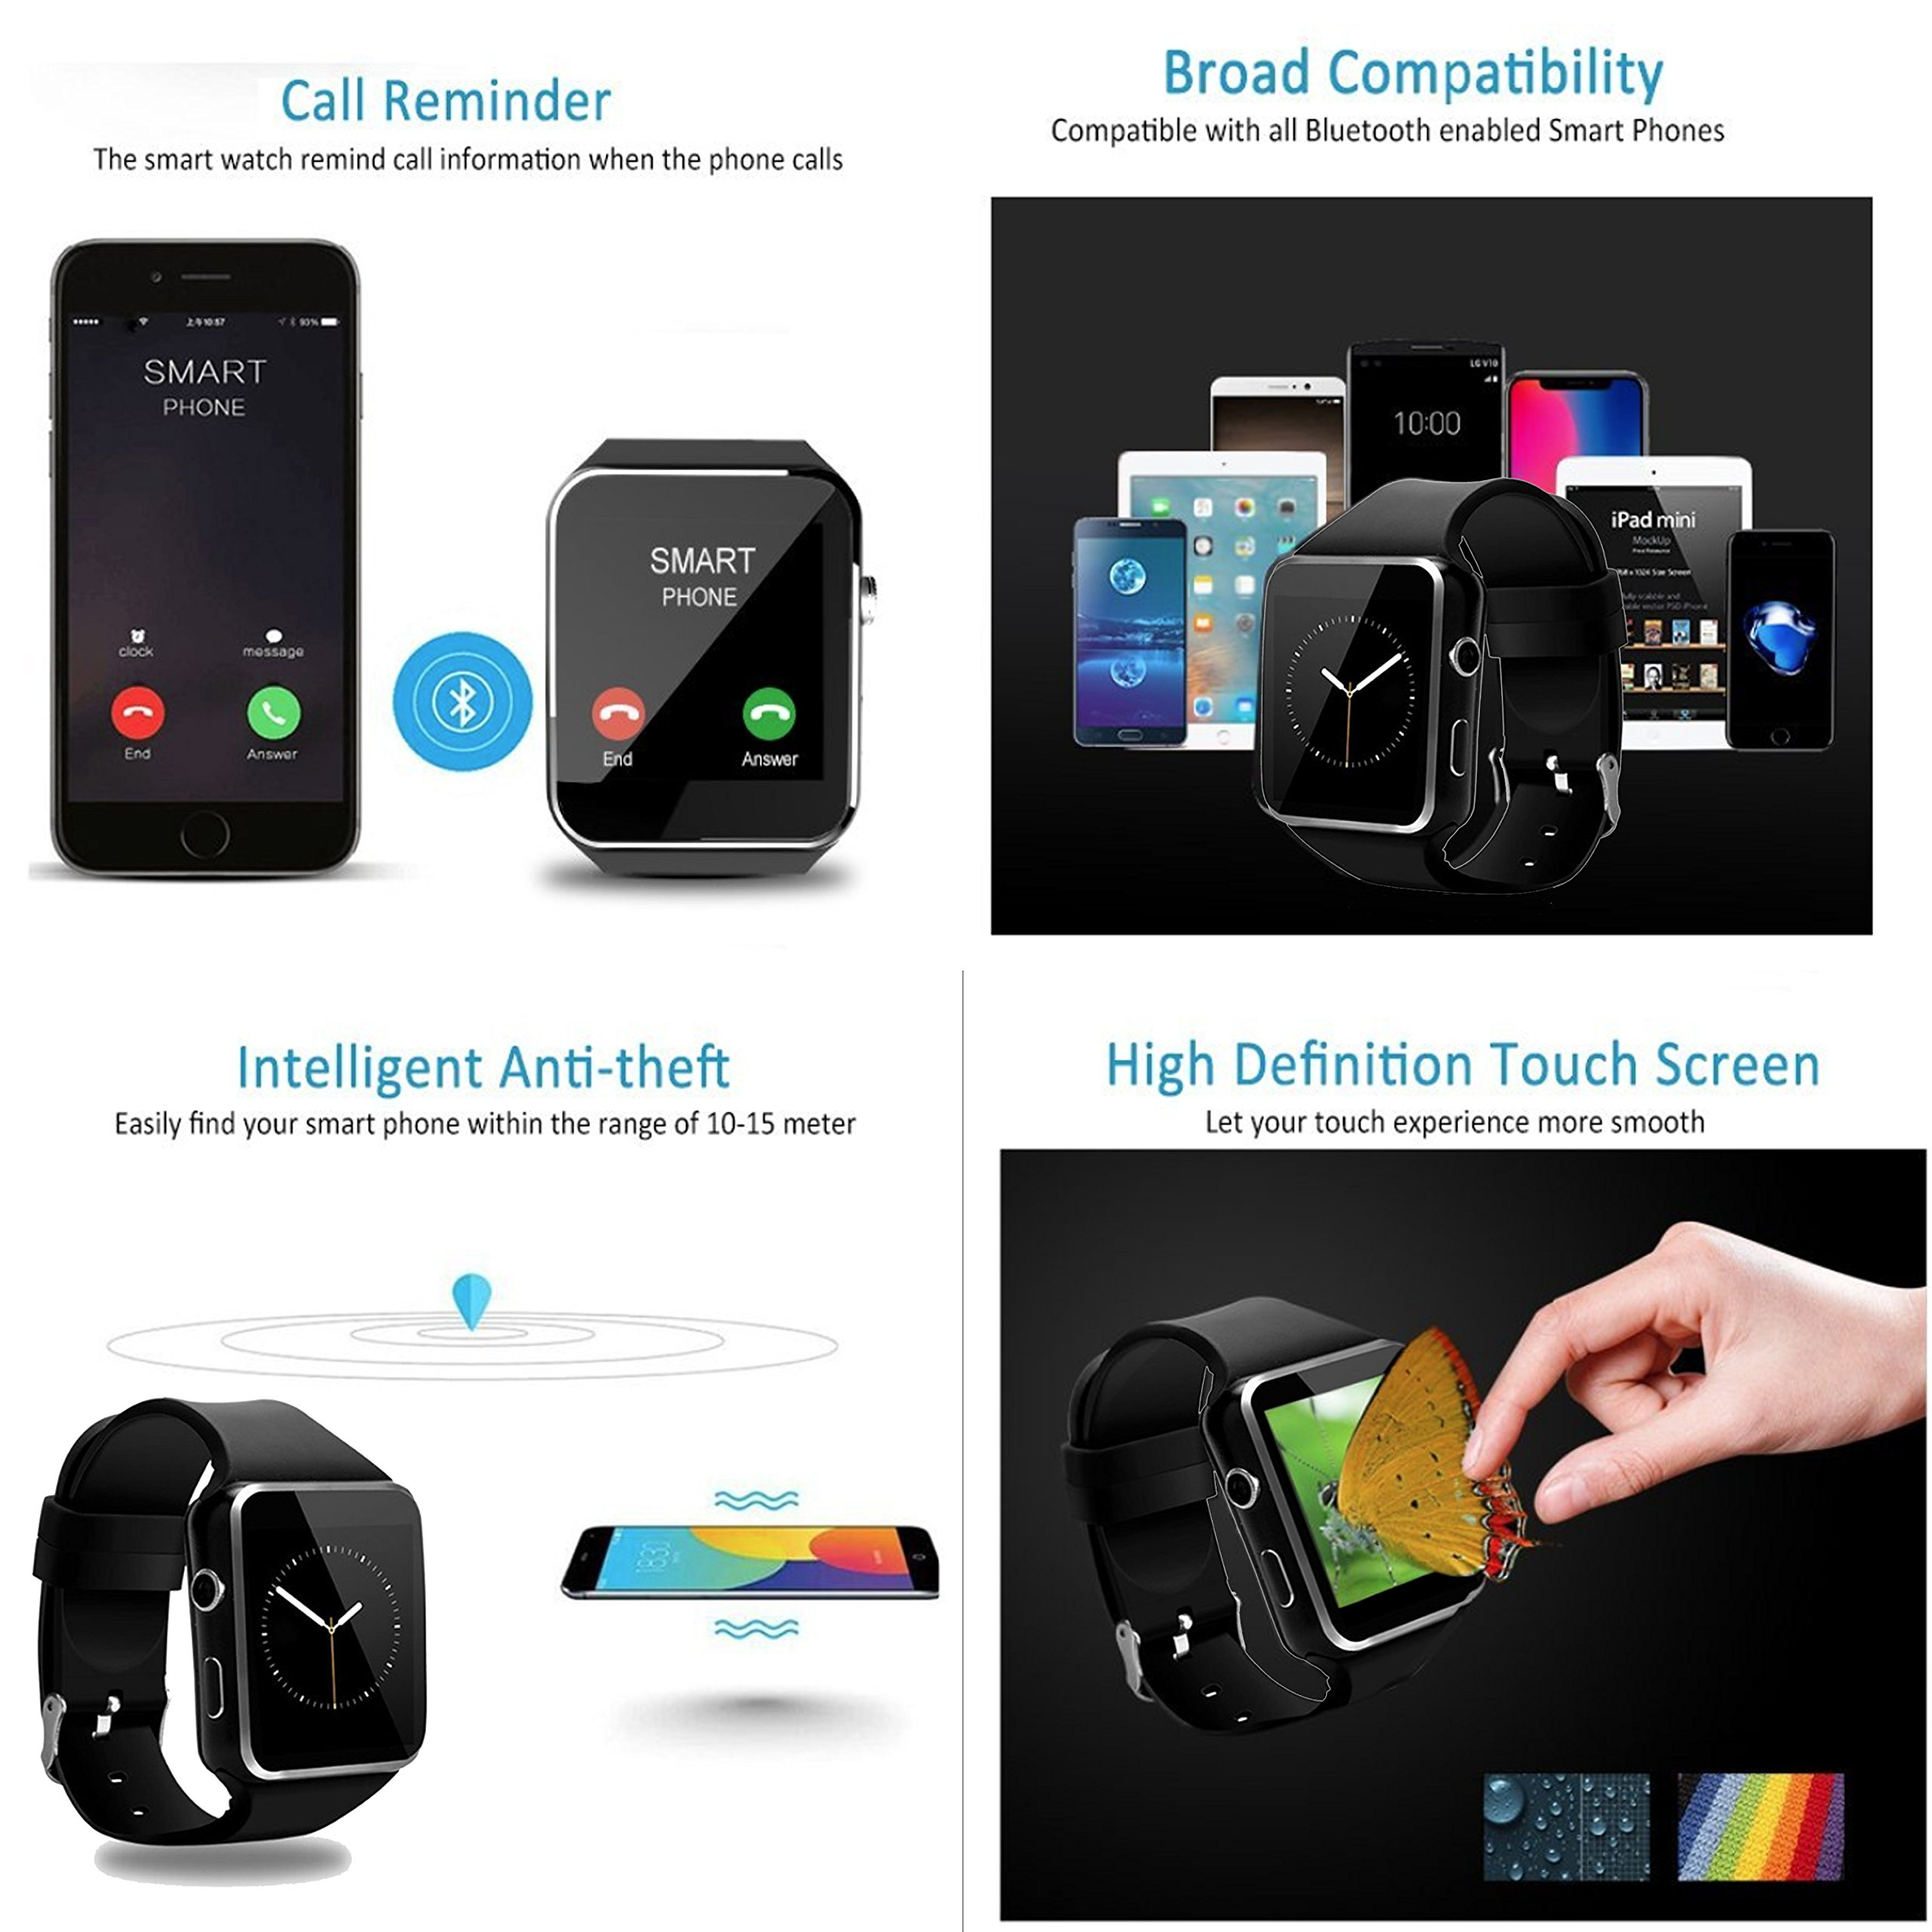 2018 Newest Bluetooth Smart Watch Touchscreen with Camera,Unlocked Watch Phone with Sim Card Slot,Smart Wrist Watch,Smartwatch Phone for Android Samsung S9 S8 IOS Iphone 8 7S Men Women Kids (BLACK) by JAVENSMARTEQT (Image #7)